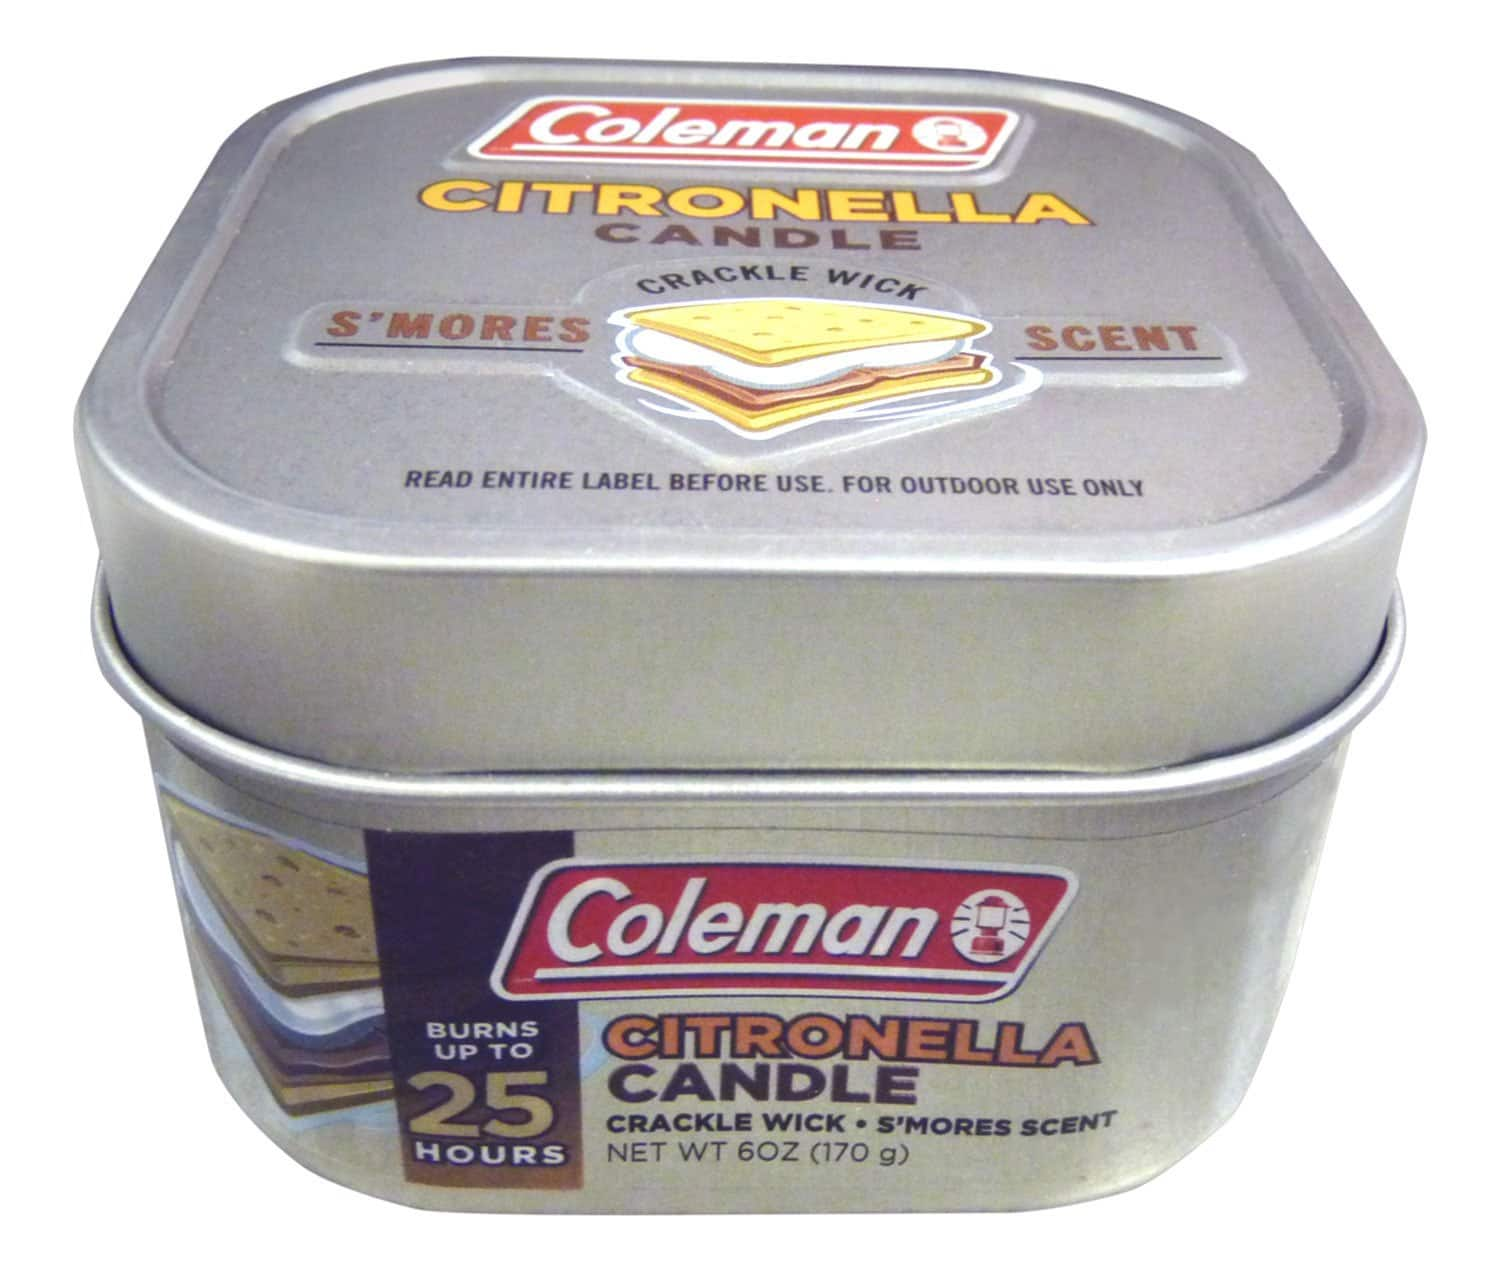 Coleman Scented Citronella Candle w/ Wooden Crackle Wick (Pine Scent or S'mores Scent) $2.94 + Free Shipping